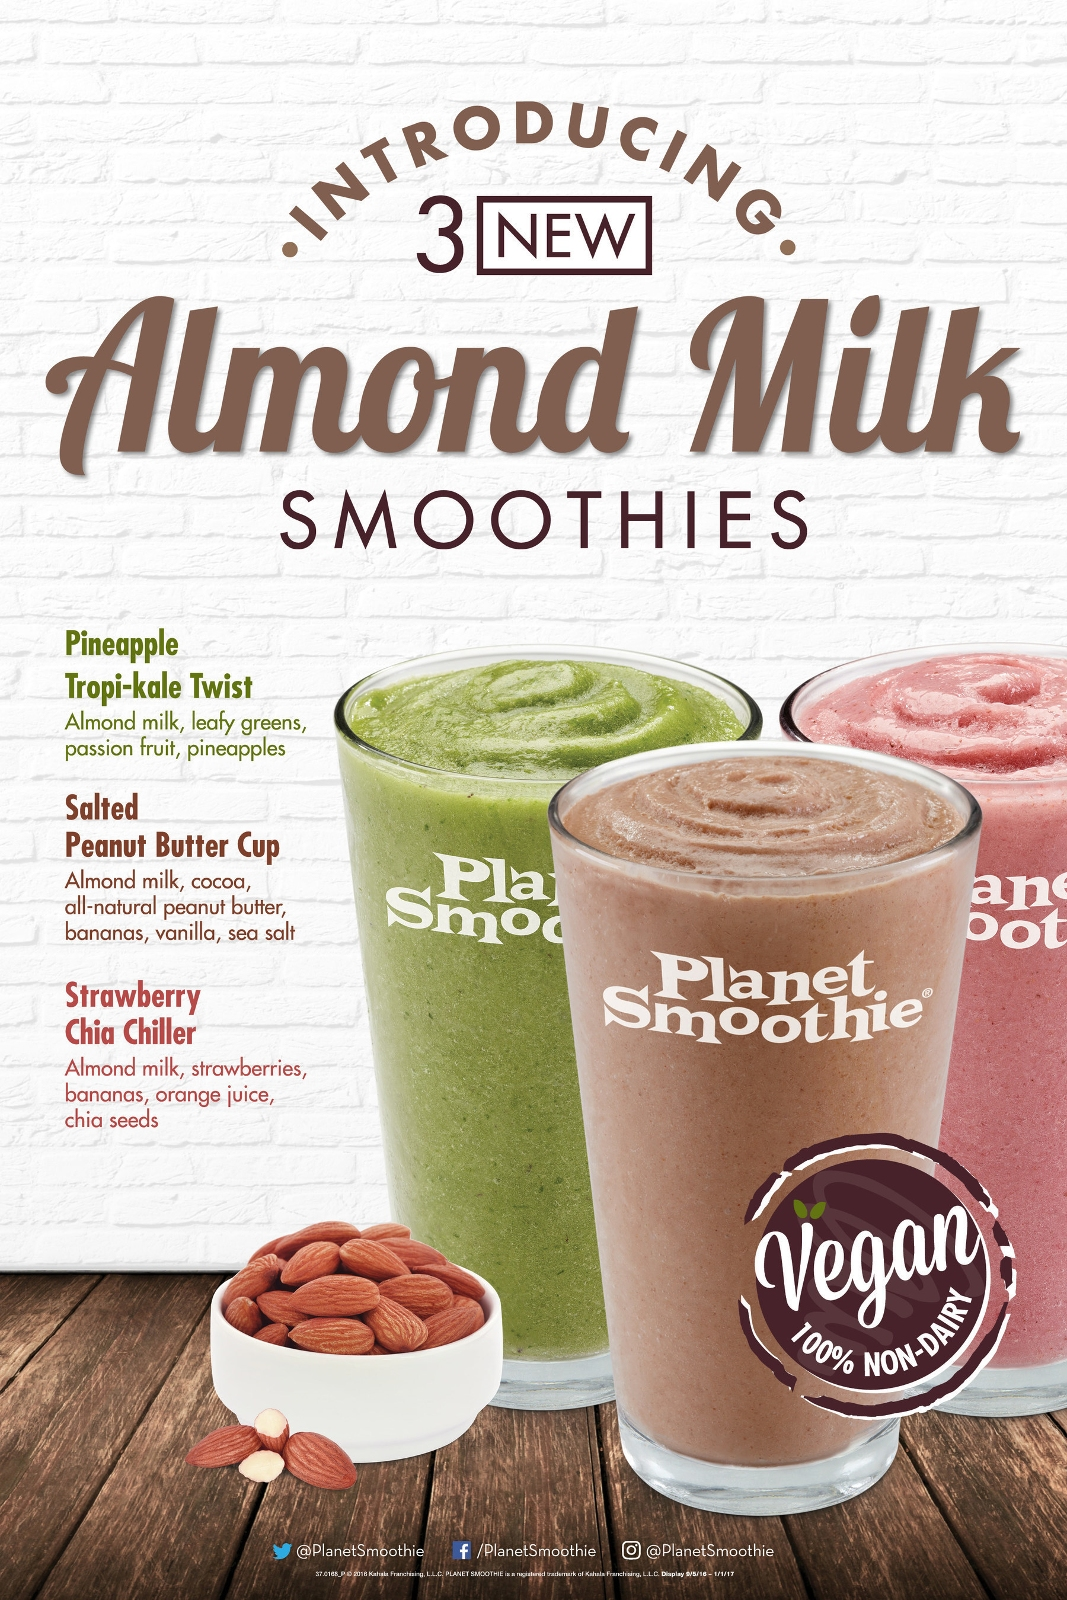 Planet Smoothie Introduces Innovative Non-Dairy Almond Milk